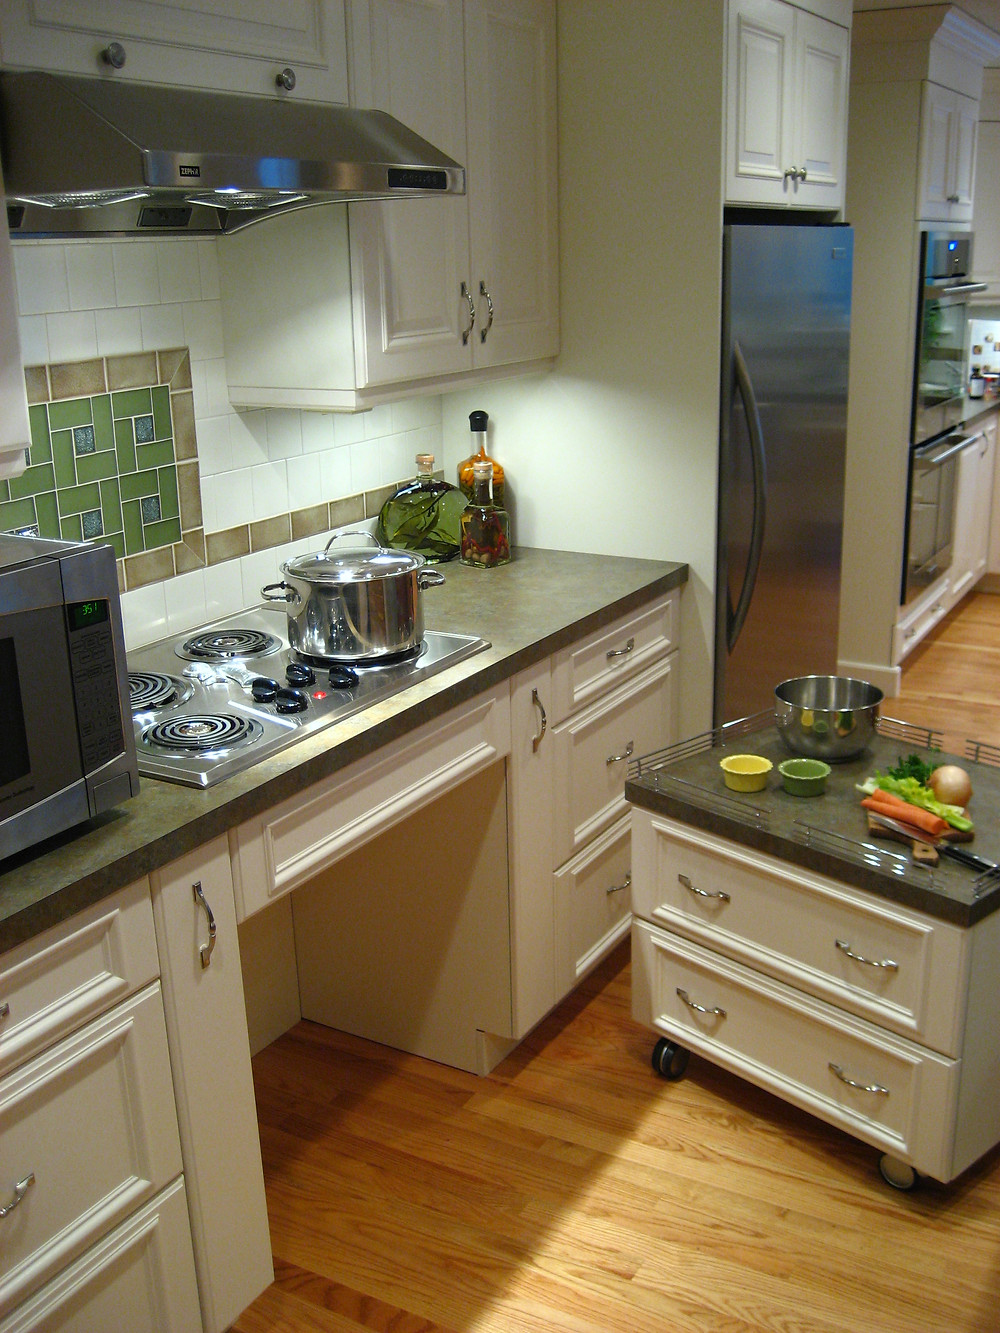 Movable base cabinetry handicap accessible cooktop range